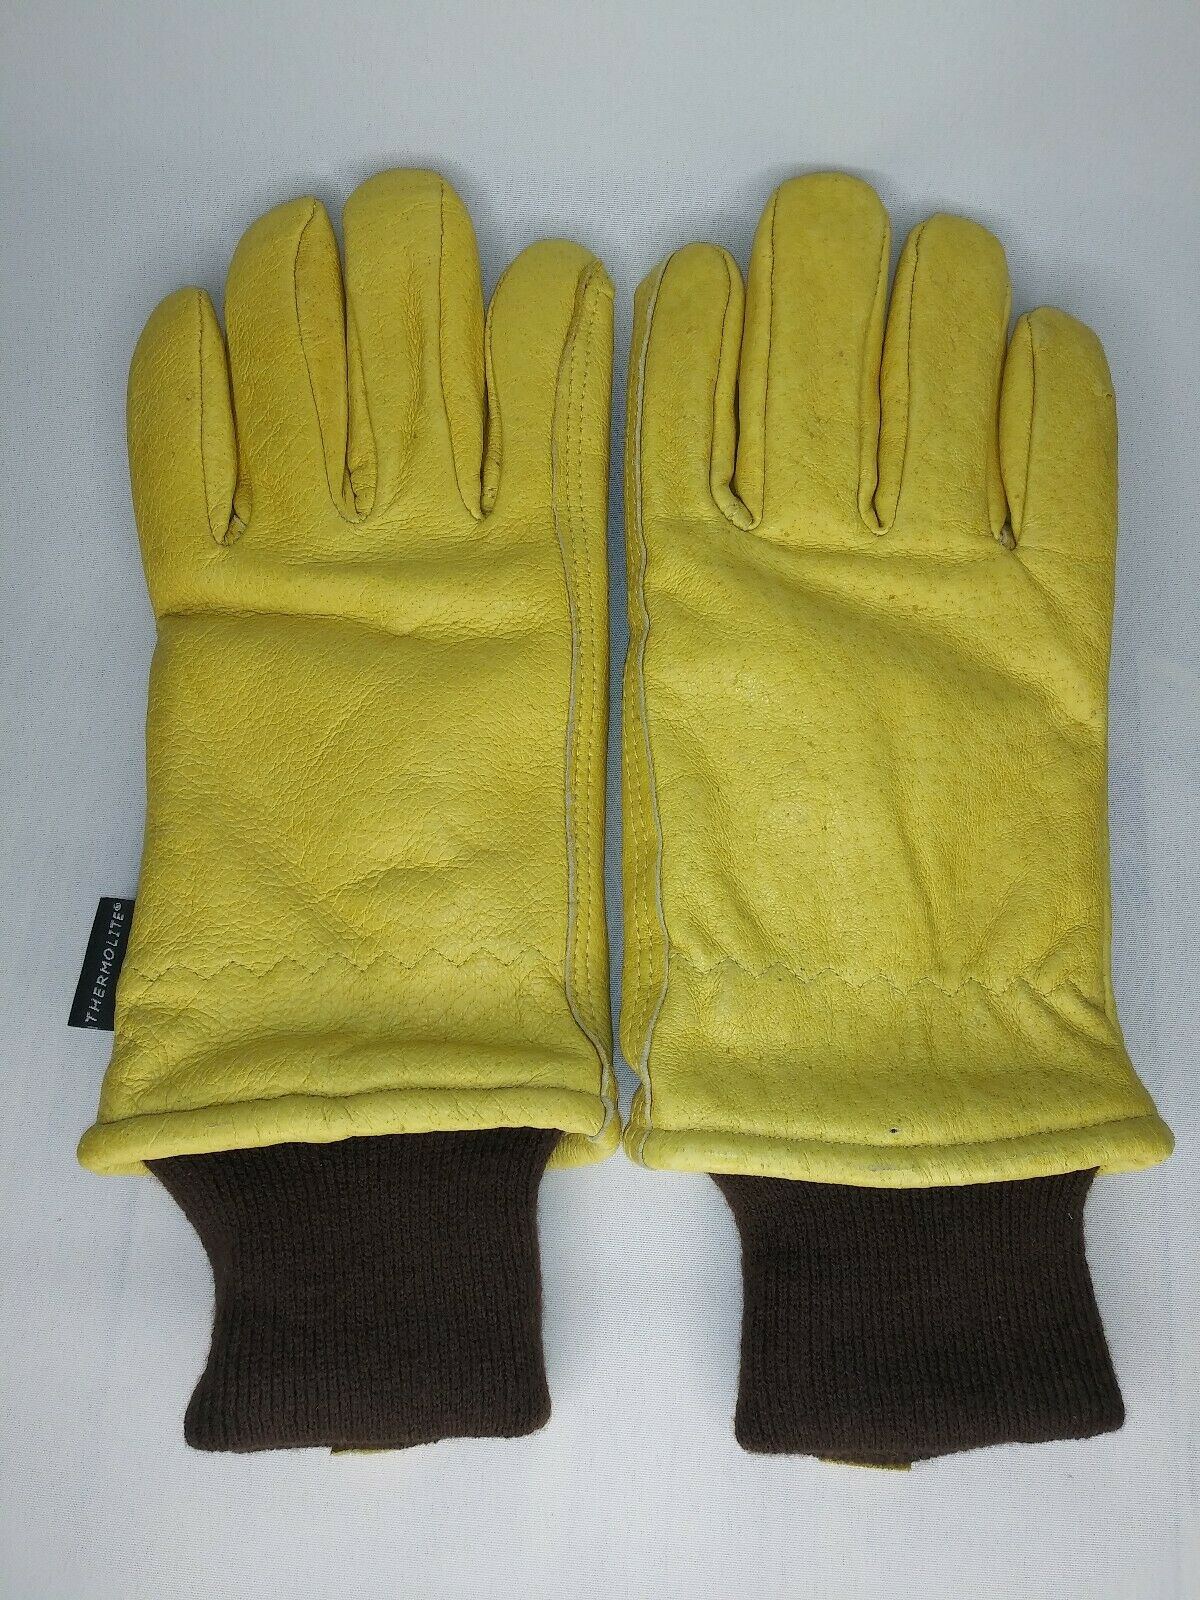 Midwest Gloves and Gear 609TLKW-M-AZ-6 Cowhide Leather Work Glove with Thermolite Lining Medium